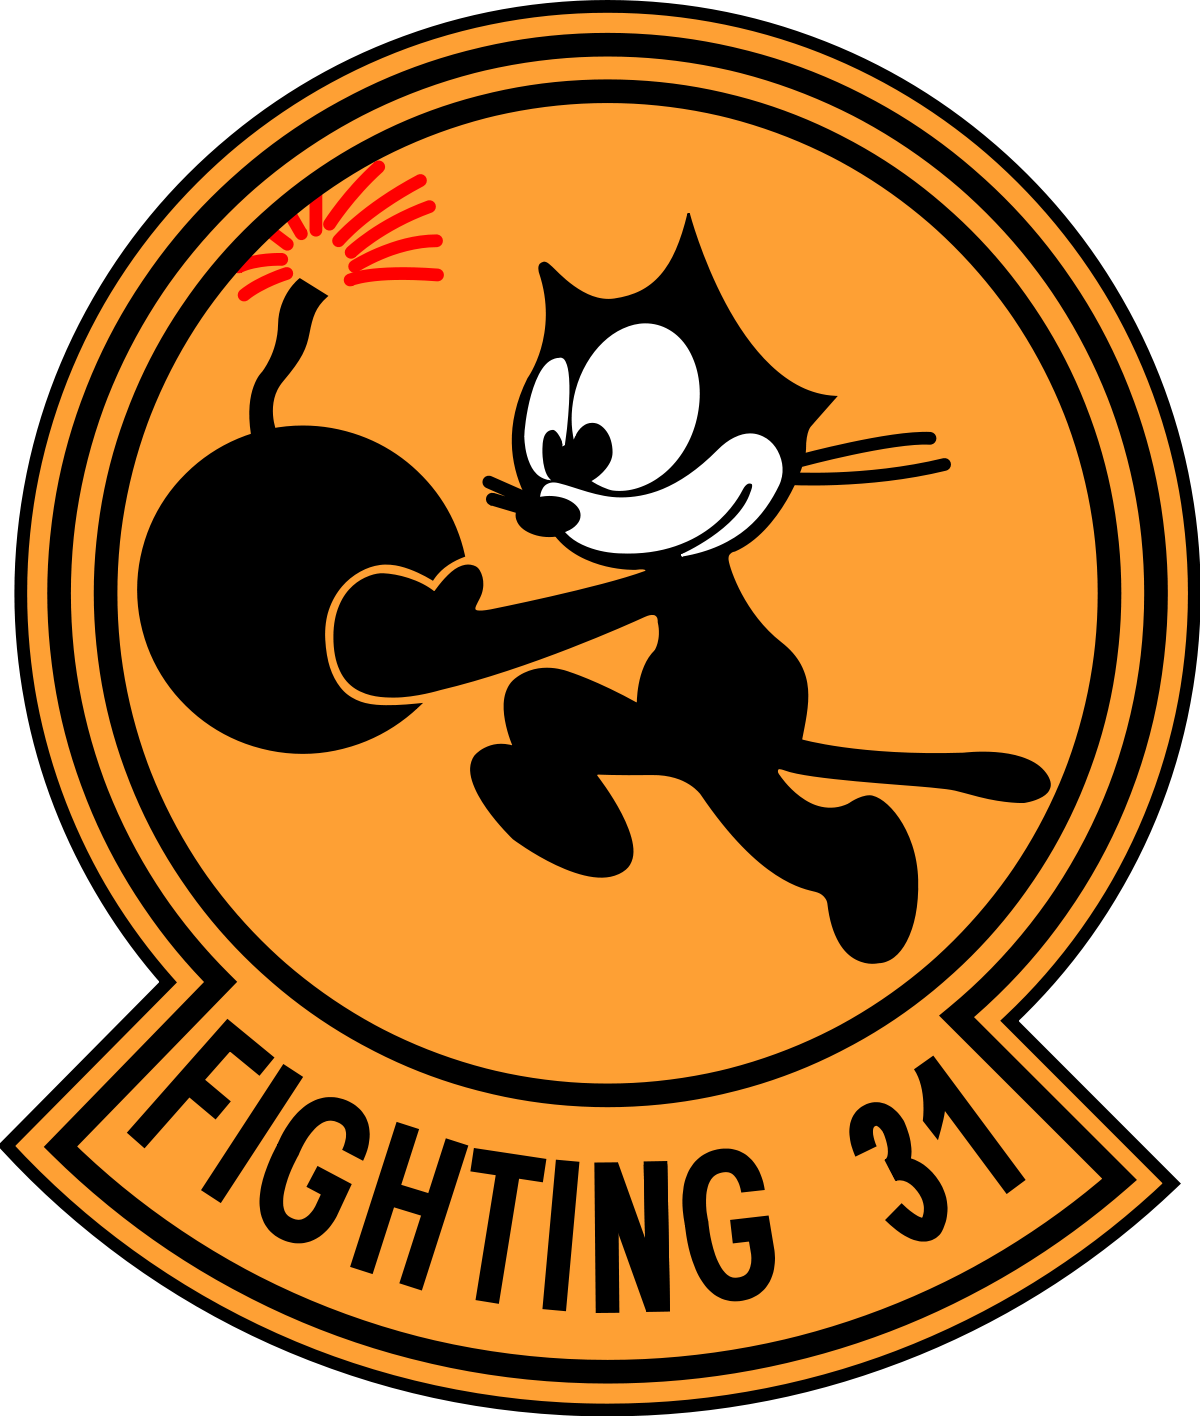 Cat bowling clipart vector black and white VFA-31 - Wikipedia vector black and white